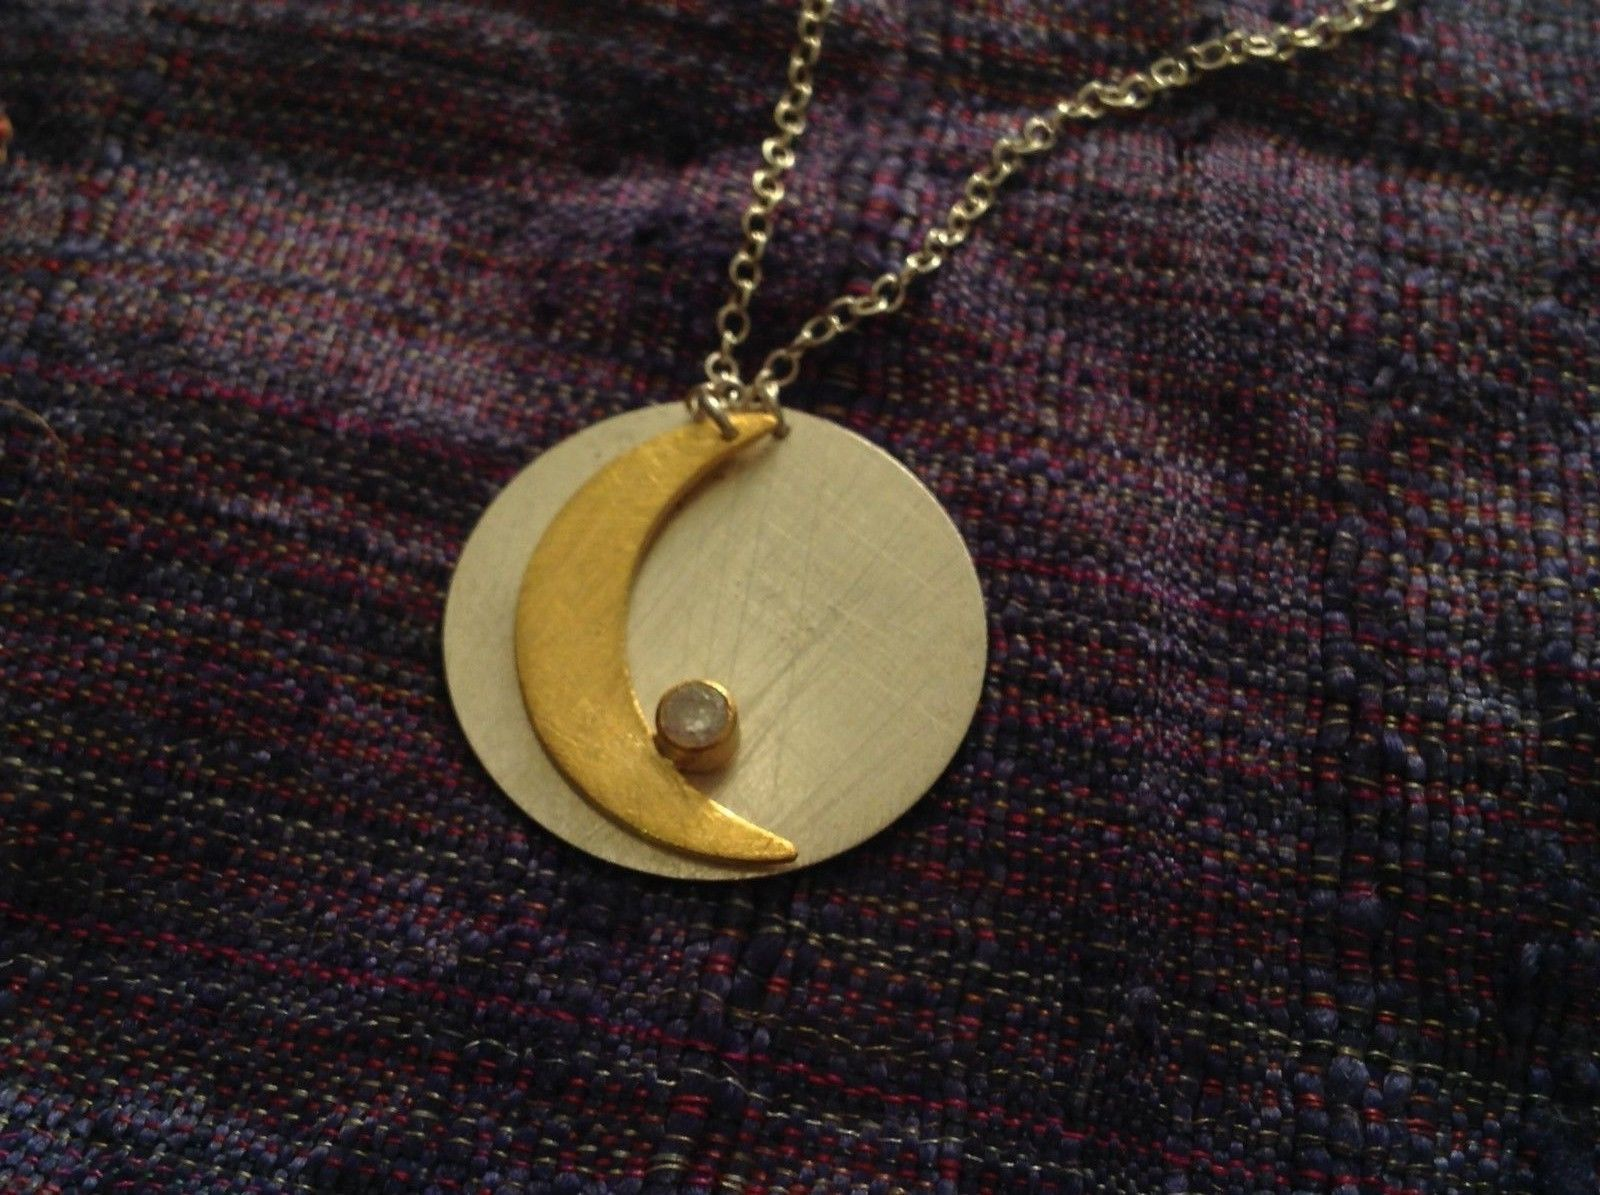 Gold Crescent Flat Moon Necklace w CZ Silver Disk & Chain by Zina Kao California